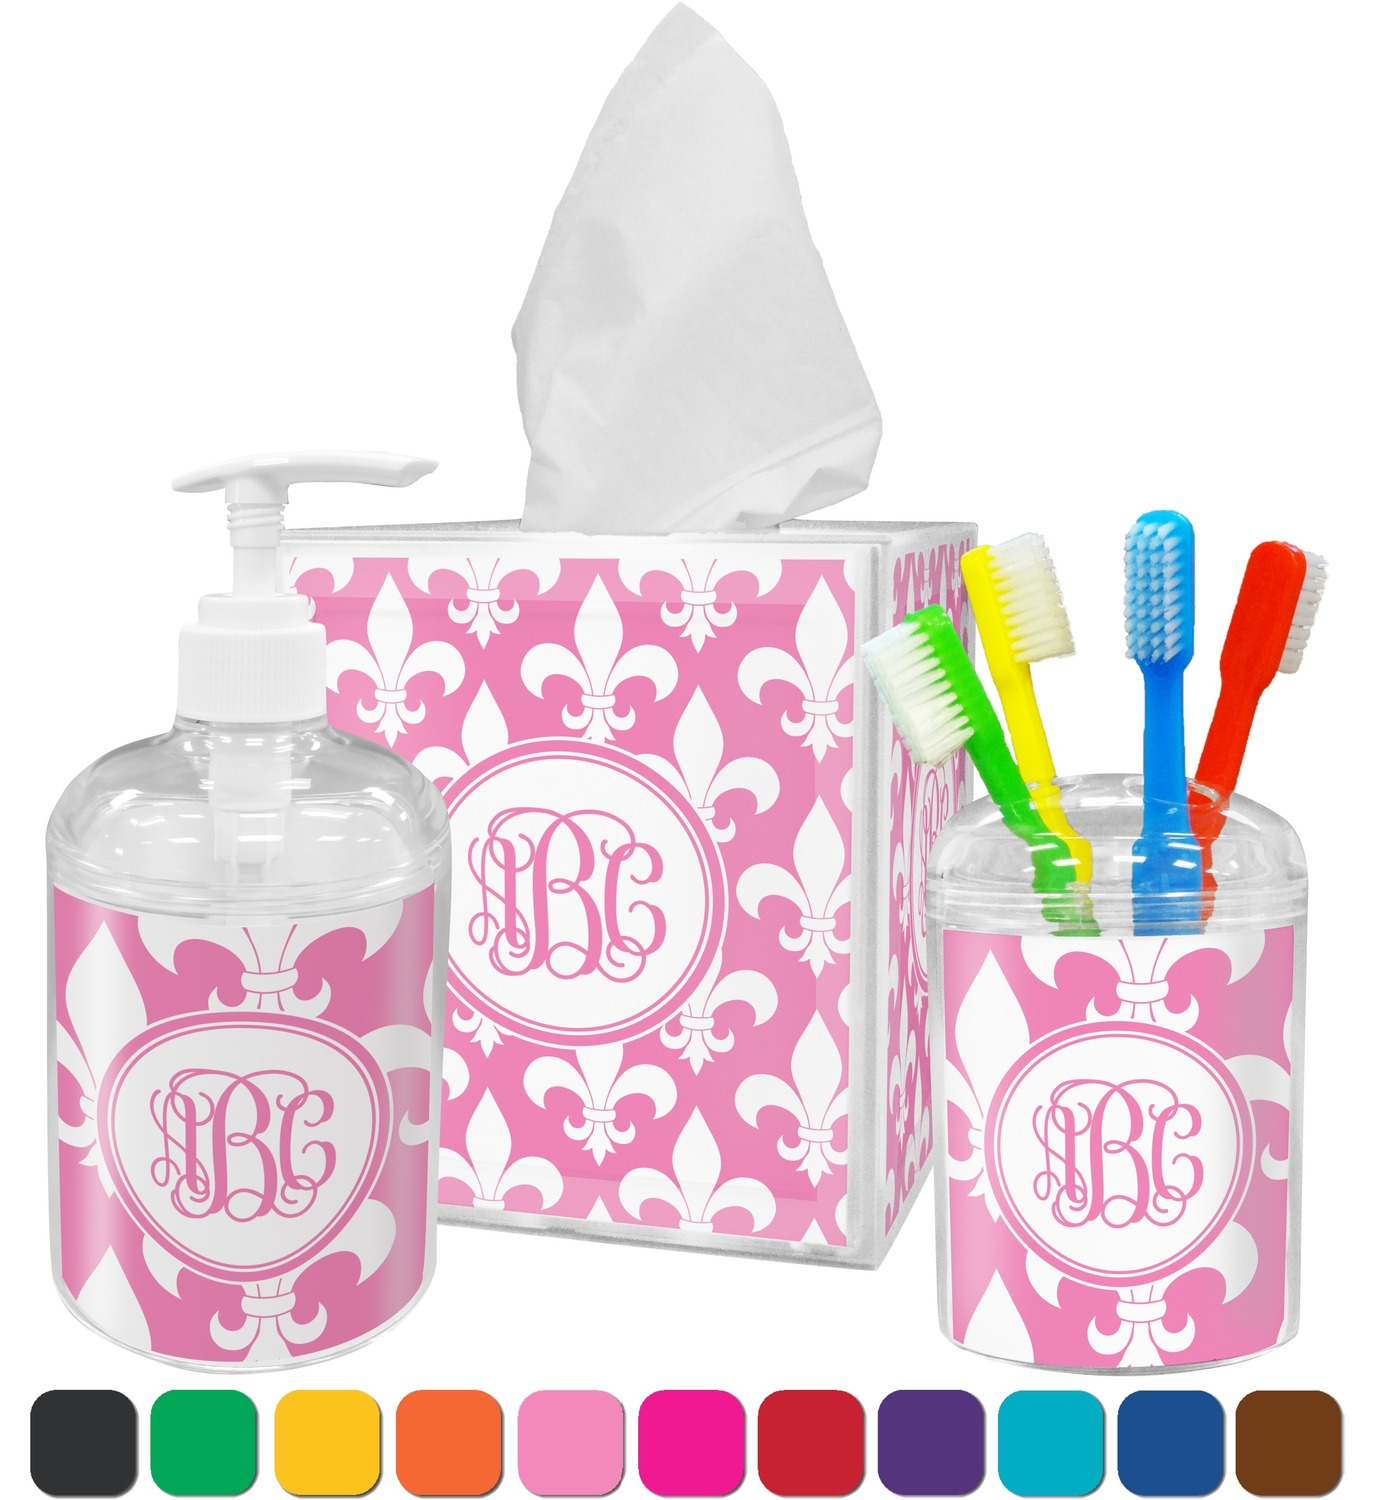 Fleur De Lis Bathroom Accessories Set (Personalized) - YouCustomizeIt